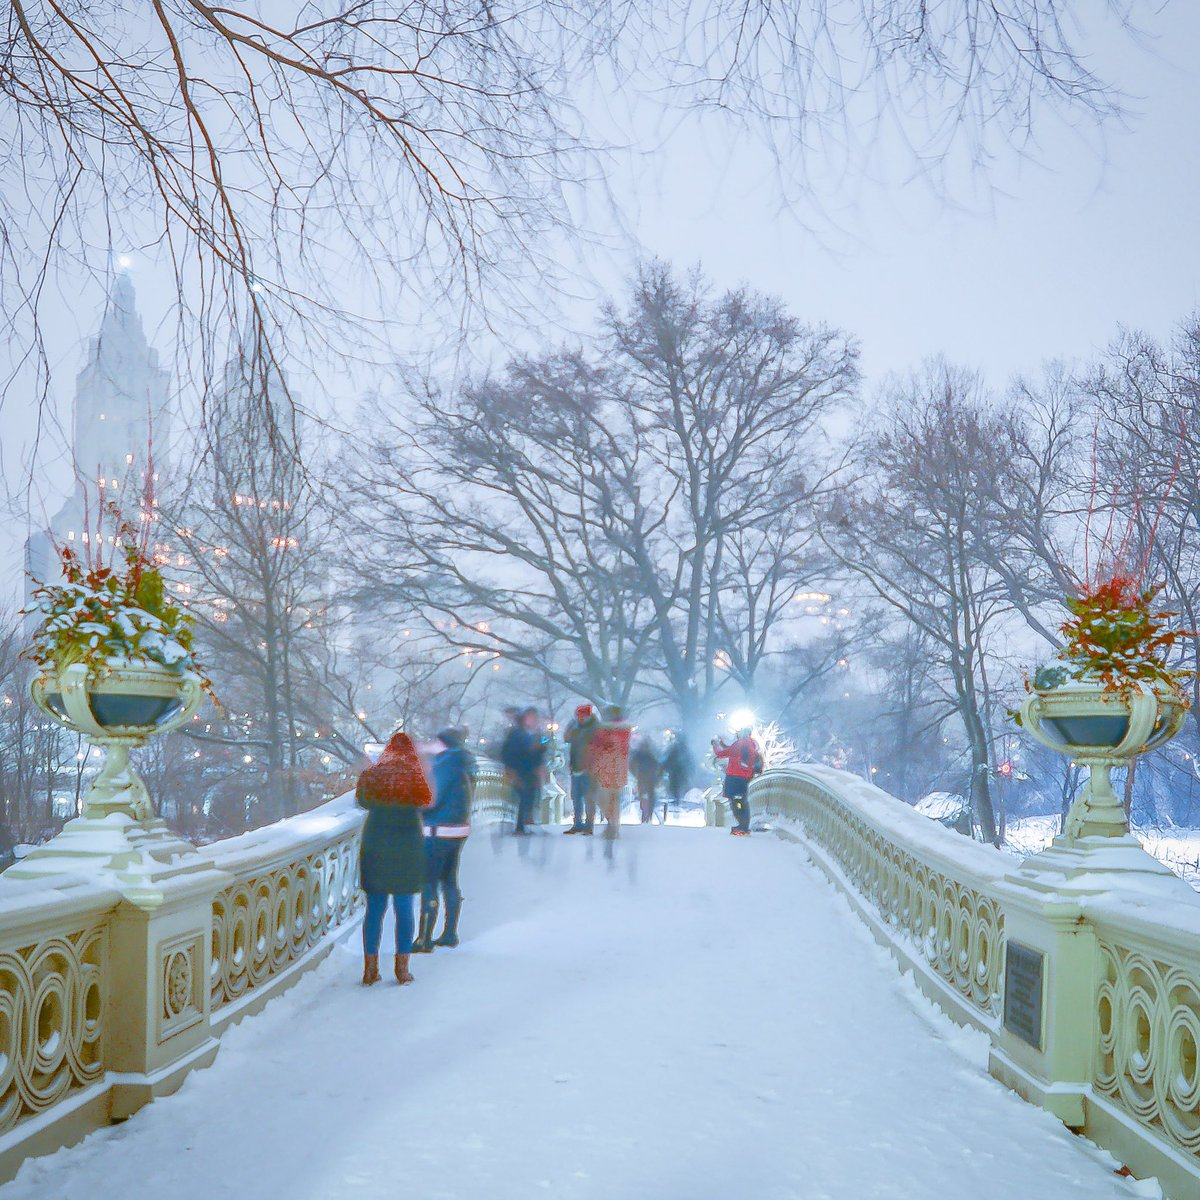 #tbt Throwback to snowy Bow Bridge. Image made on January 18, 2020 in Central Park